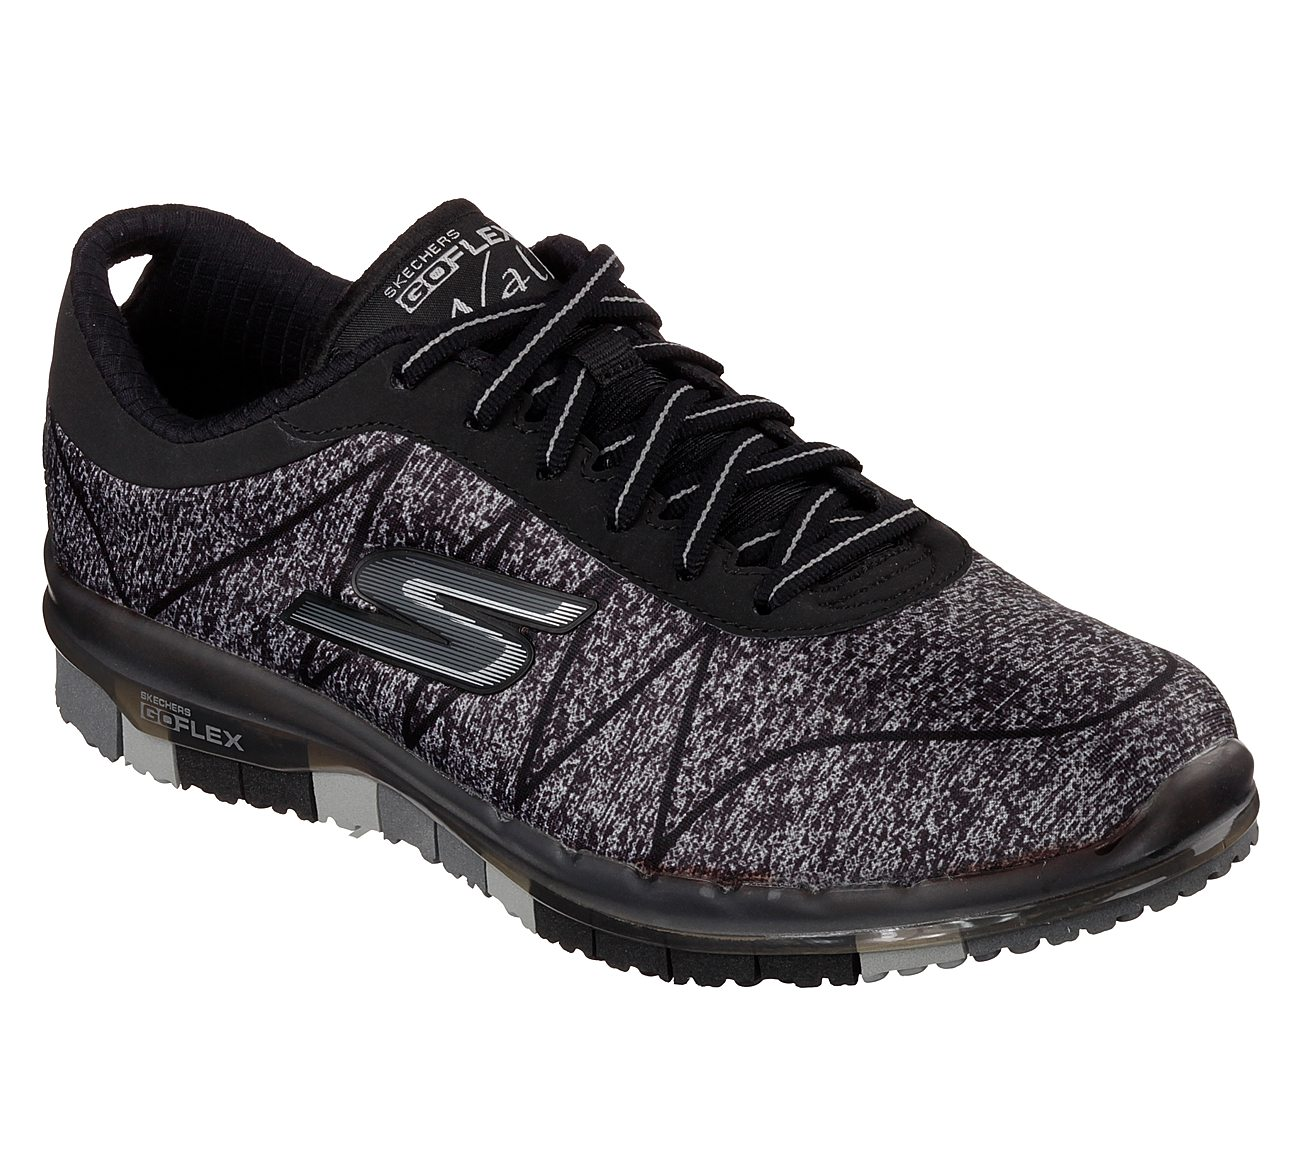 skechers go flex walk trainers